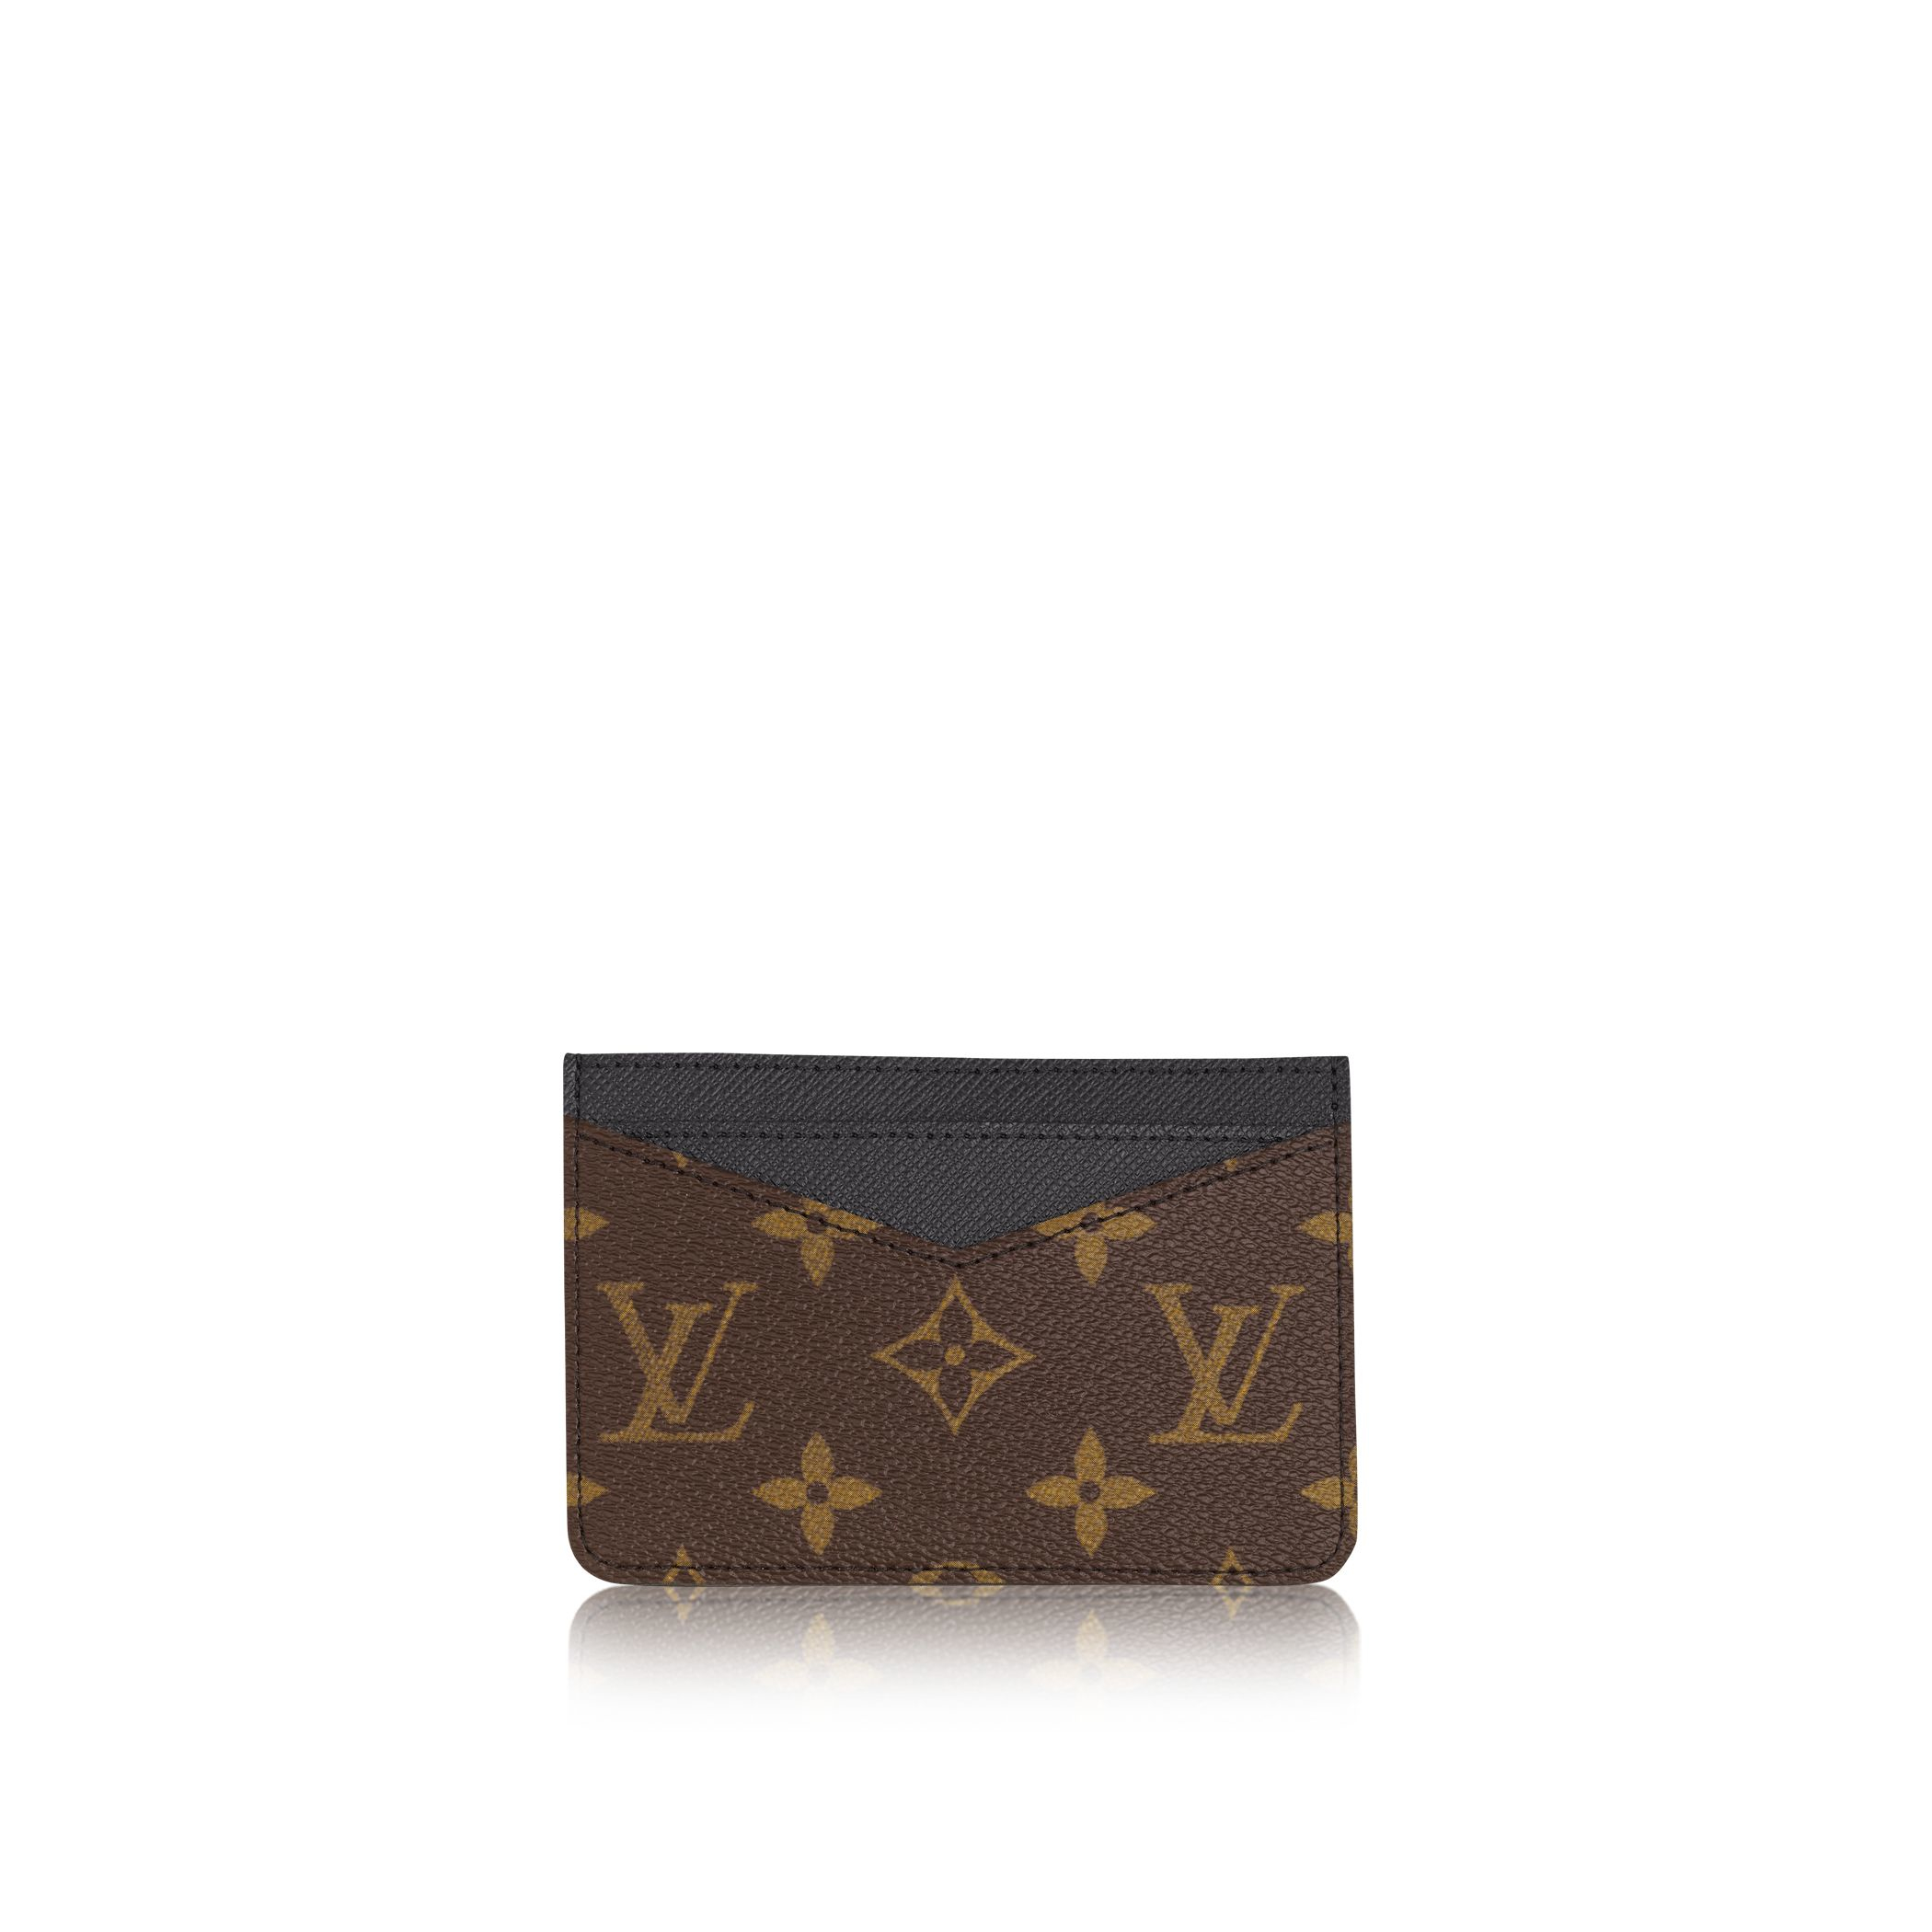 Louis vuitton neo porte cartes in blue for men lyst for Porte carte ysl